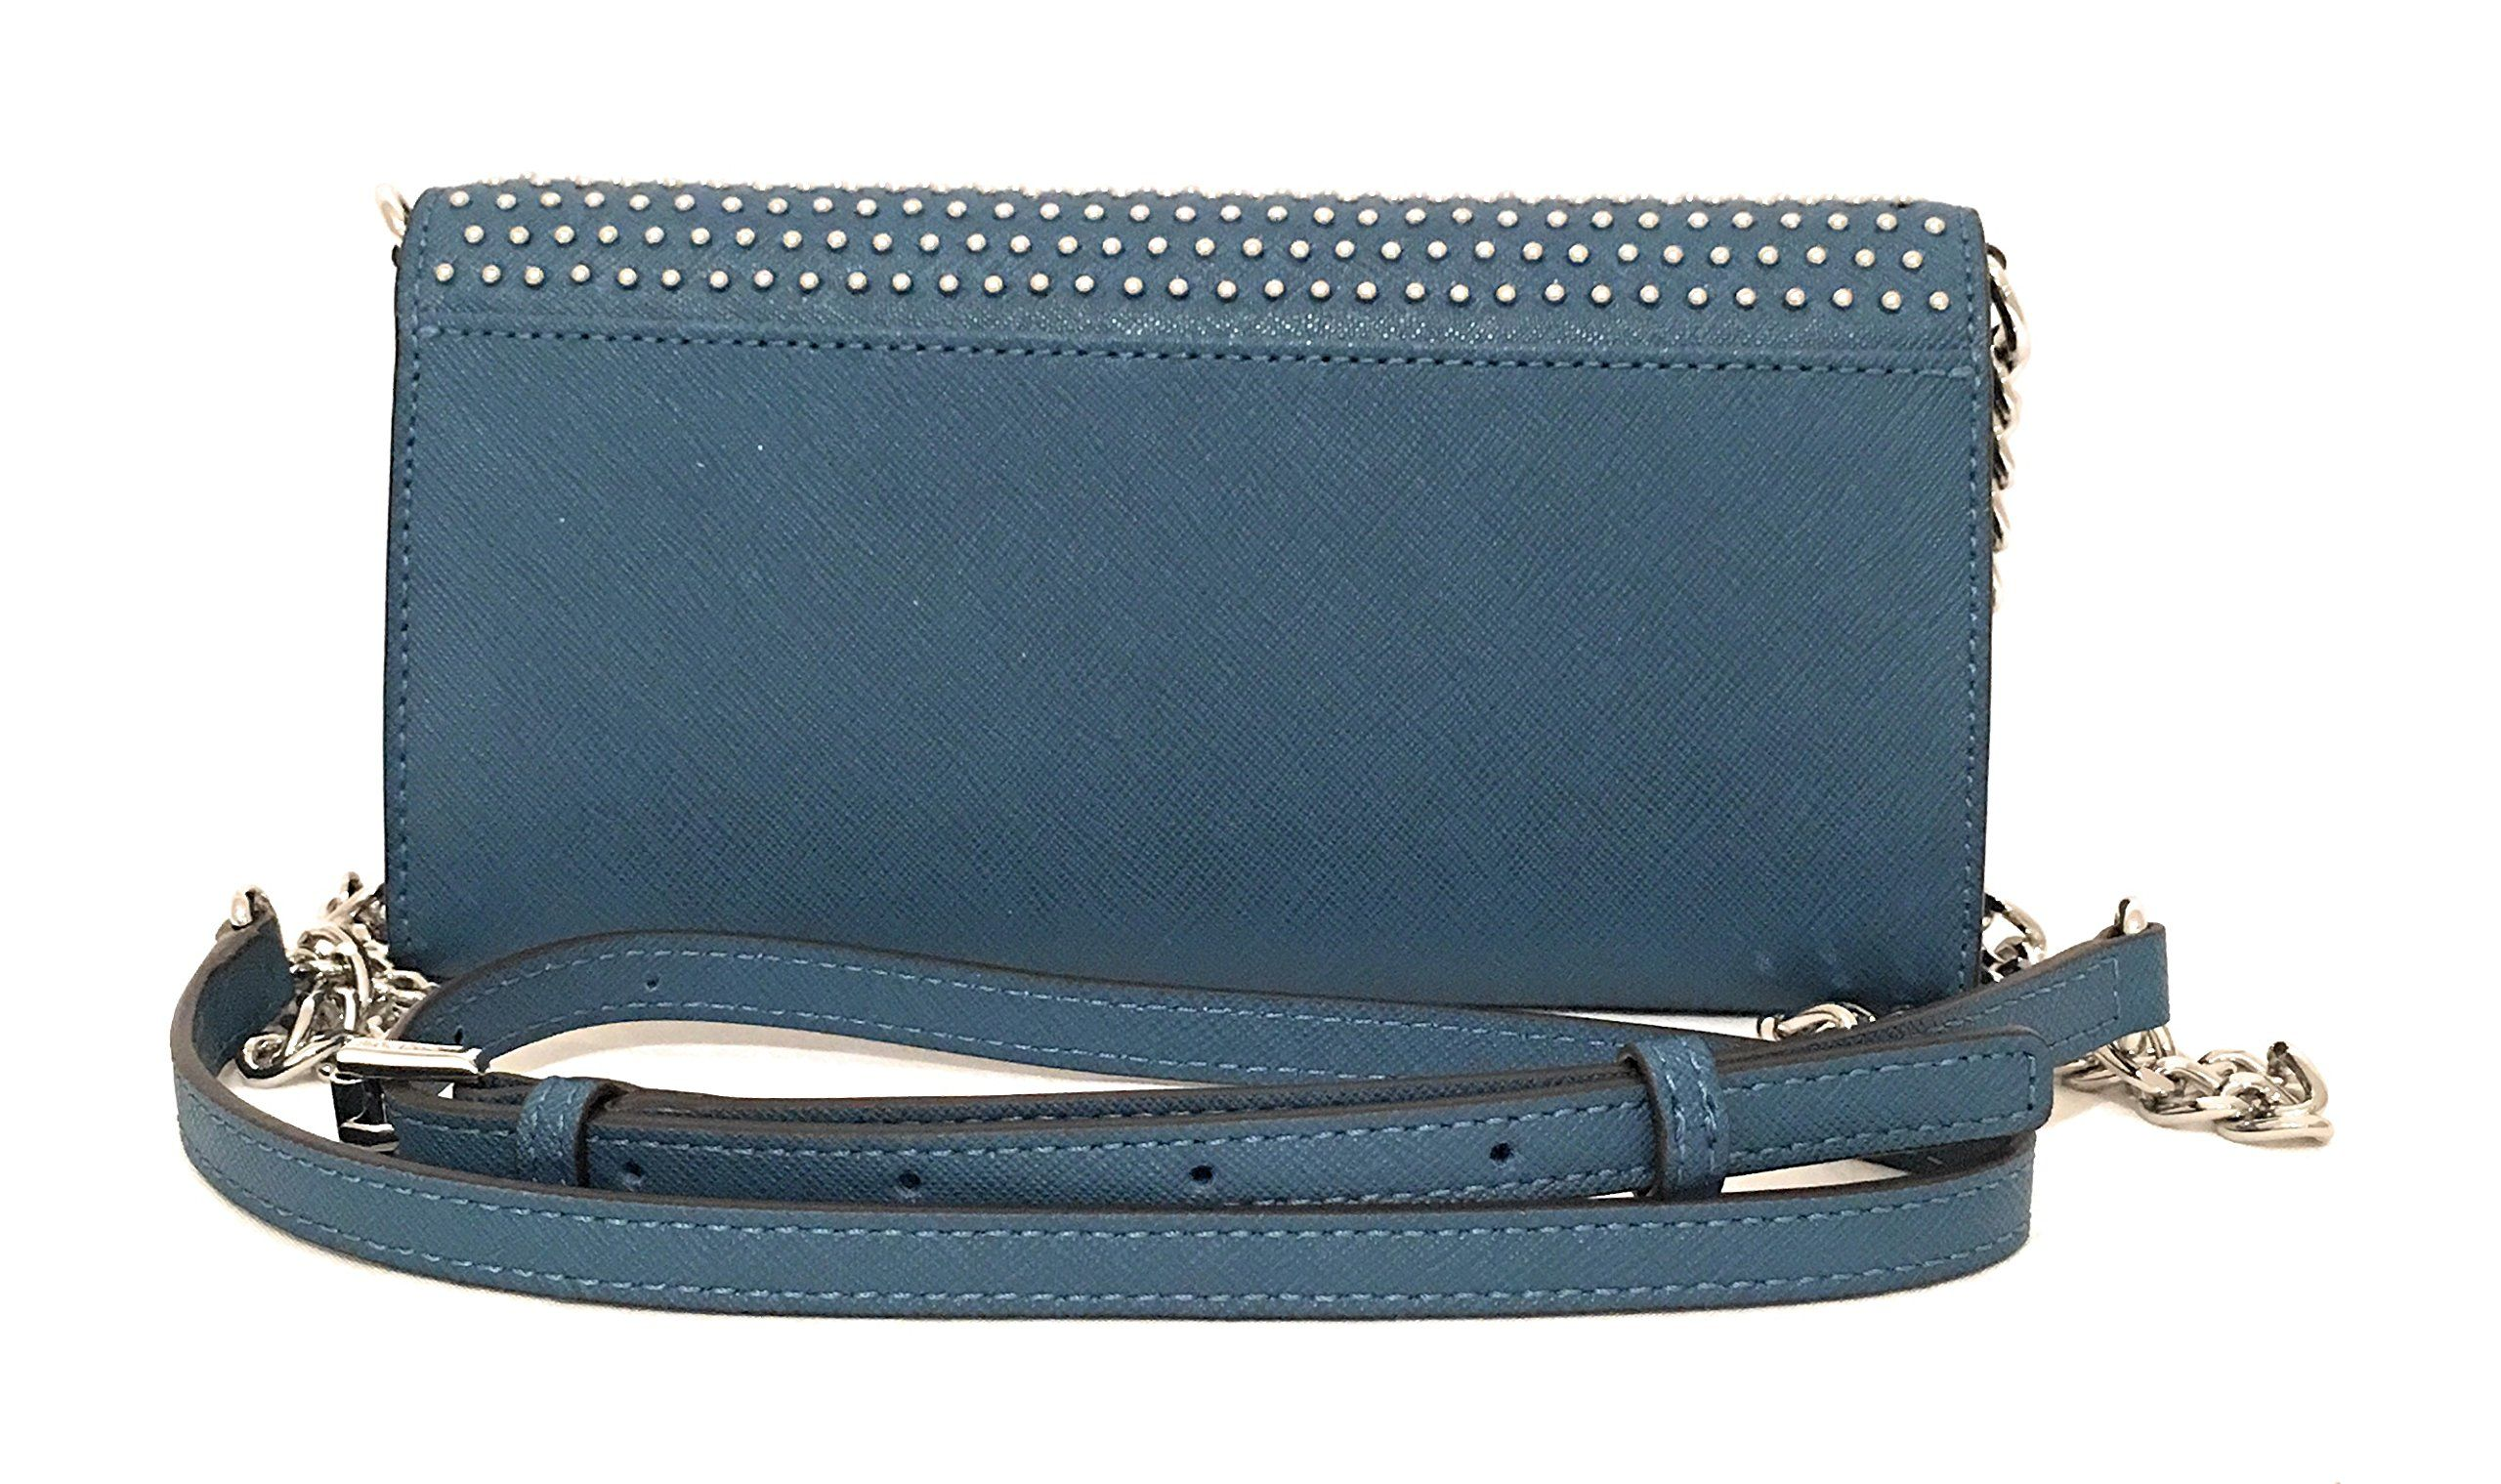 abce18da0884 Michael Kors Jet Set MIcro Stud Saffiano Leather Convertible Chain Wallet  Steel Blue -- You can get more details by clicking on the image.